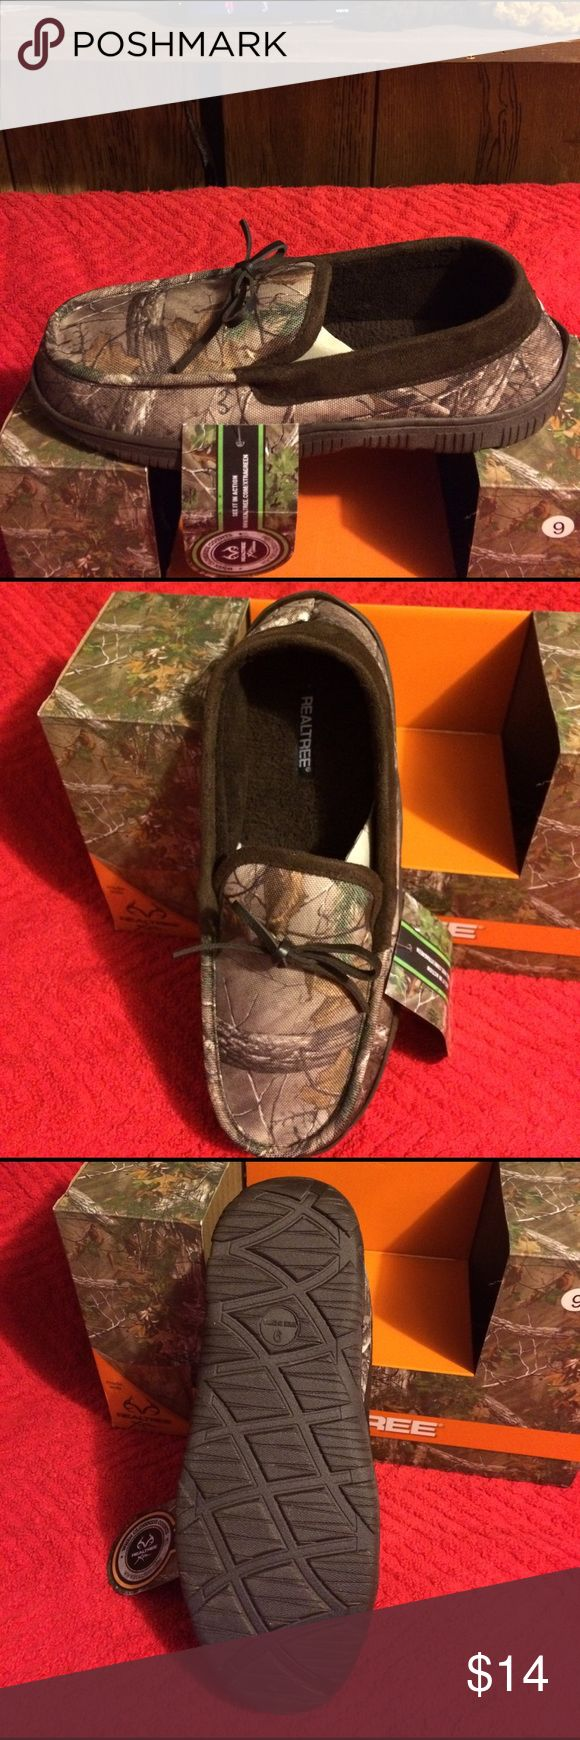 Men size 9 slippers by Real Tree camouflage new New with box men slippers by real tree size 9 camouflage indoor out door sole easy to slip on and off real tree Shoes Loafers & Slip-Ons